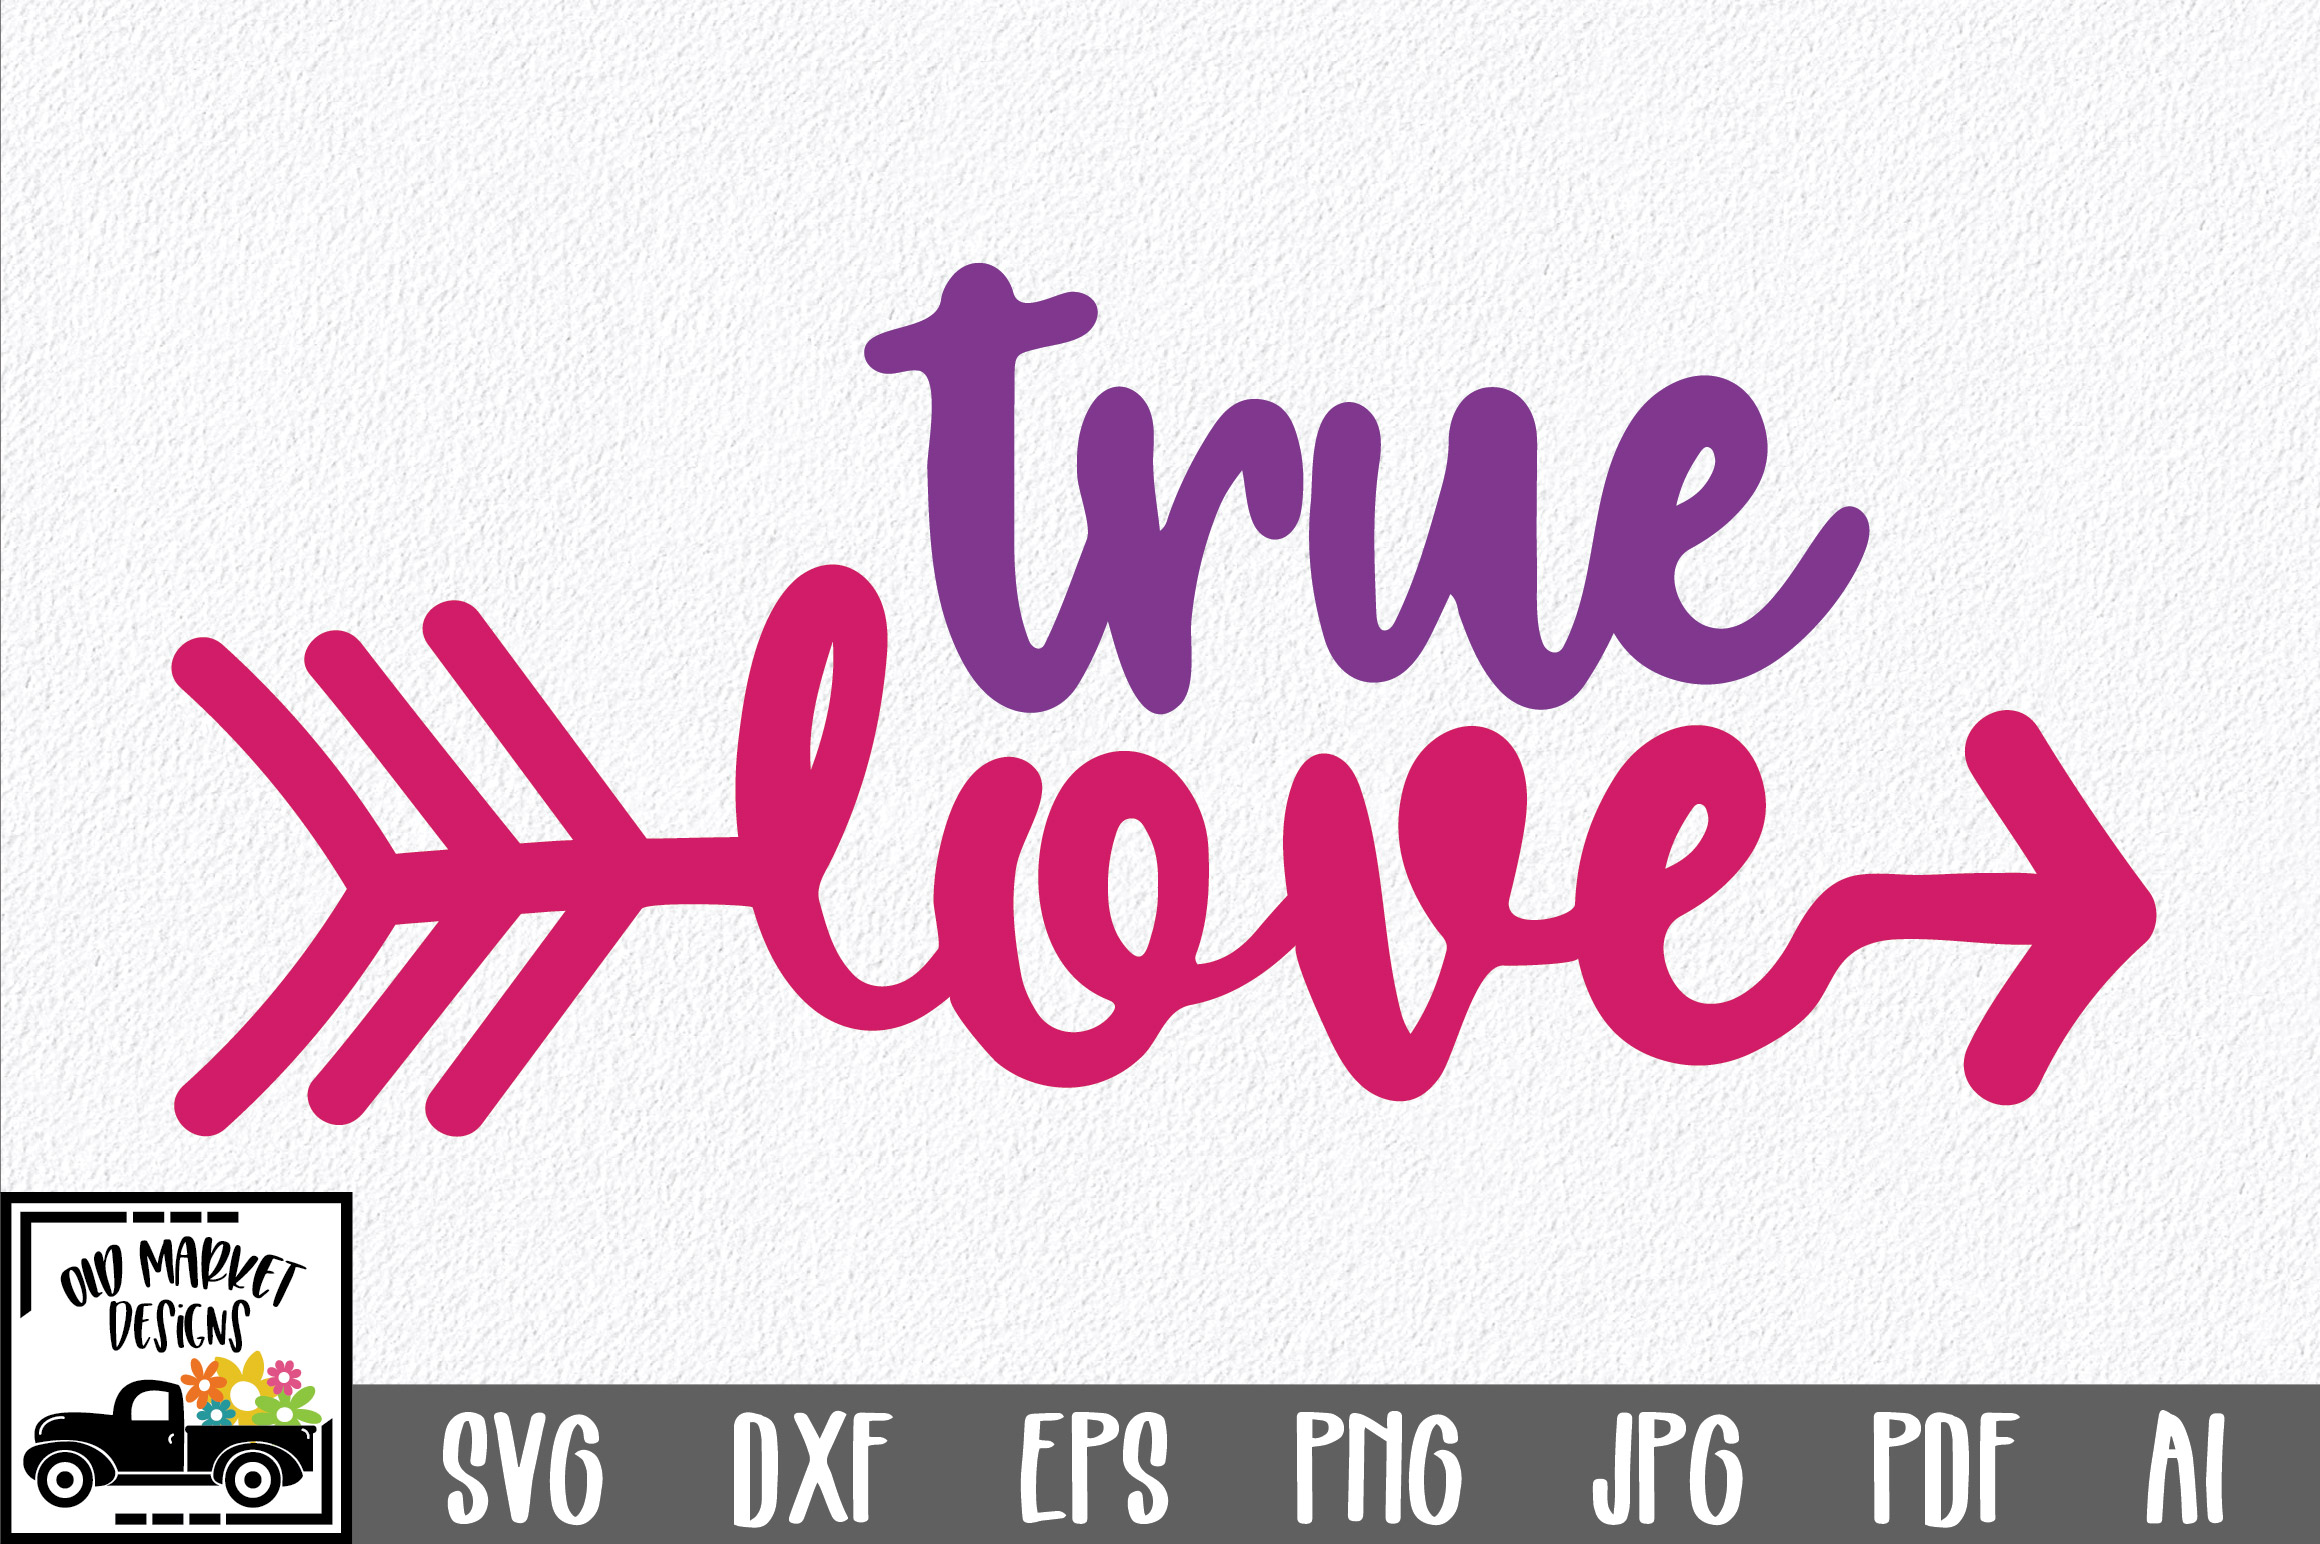 Download Free True Love Valentine Graphic By Oldmarketdesigns Creative Fabrica for Cricut Explore, Silhouette and other cutting machines.